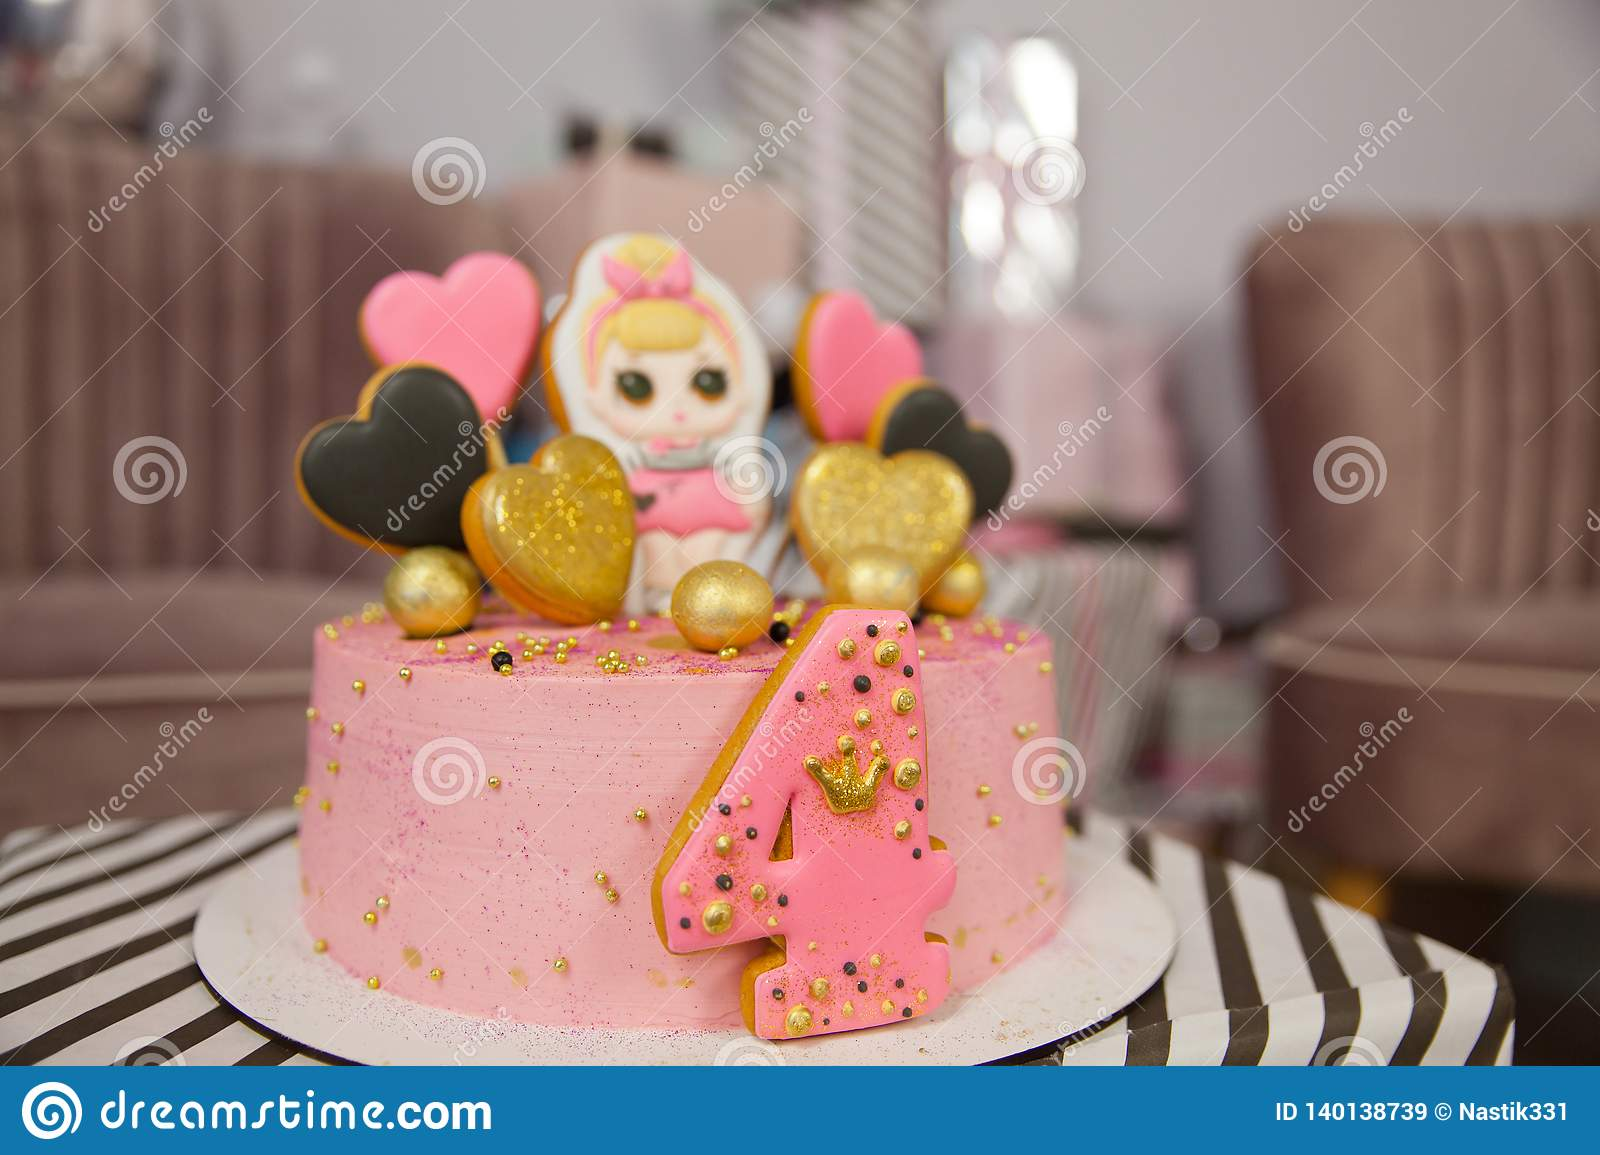 Excellent Birthday Cake For 4 Years Decorated With Gingerbread Hearts With Funny Birthday Cards Online Inifodamsfinfo